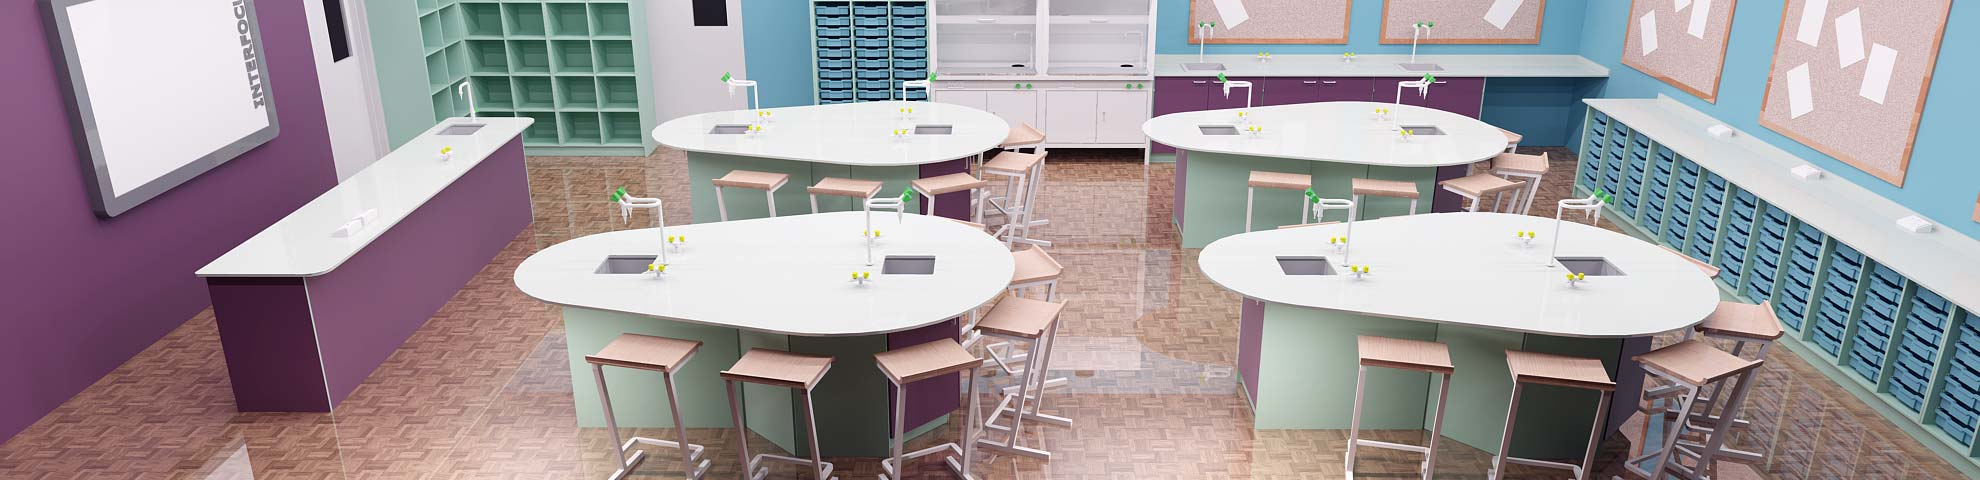 worktops for school laboratories, food technology rooms and ICT suites